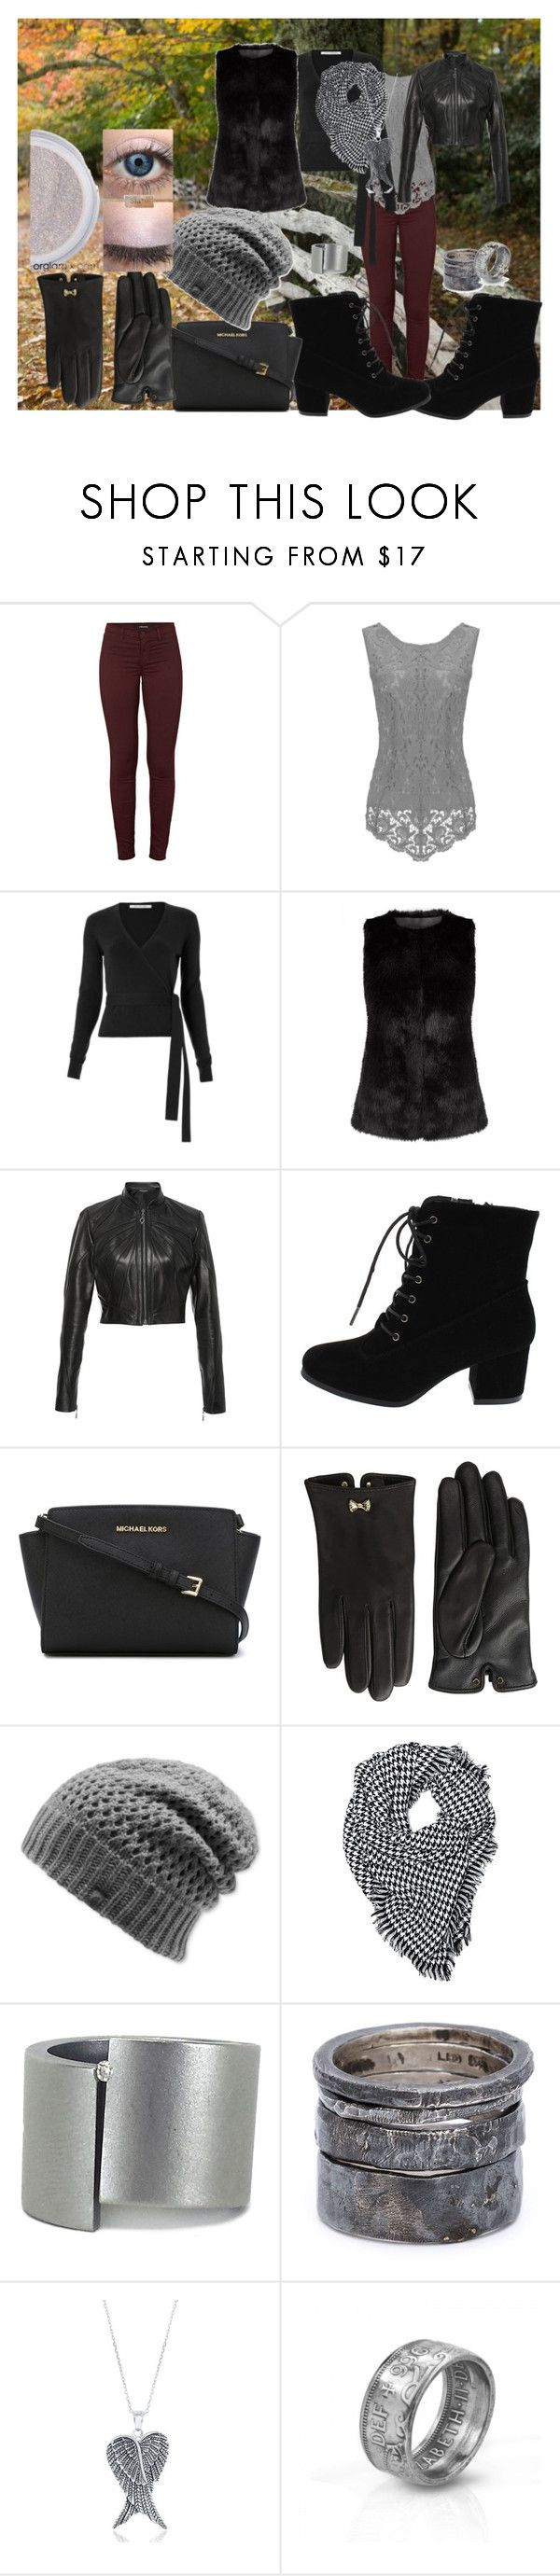 """""""autunno,inverno2"""" by viviana519 ❤ liked on Polyvore featuring J Brand, Diane Von Furstenberg, Oday Shakar, MICHAEL Michael Kors, Ted Baker, The North Face, Niessing, Lee Brennan Design and La Preciosa"""